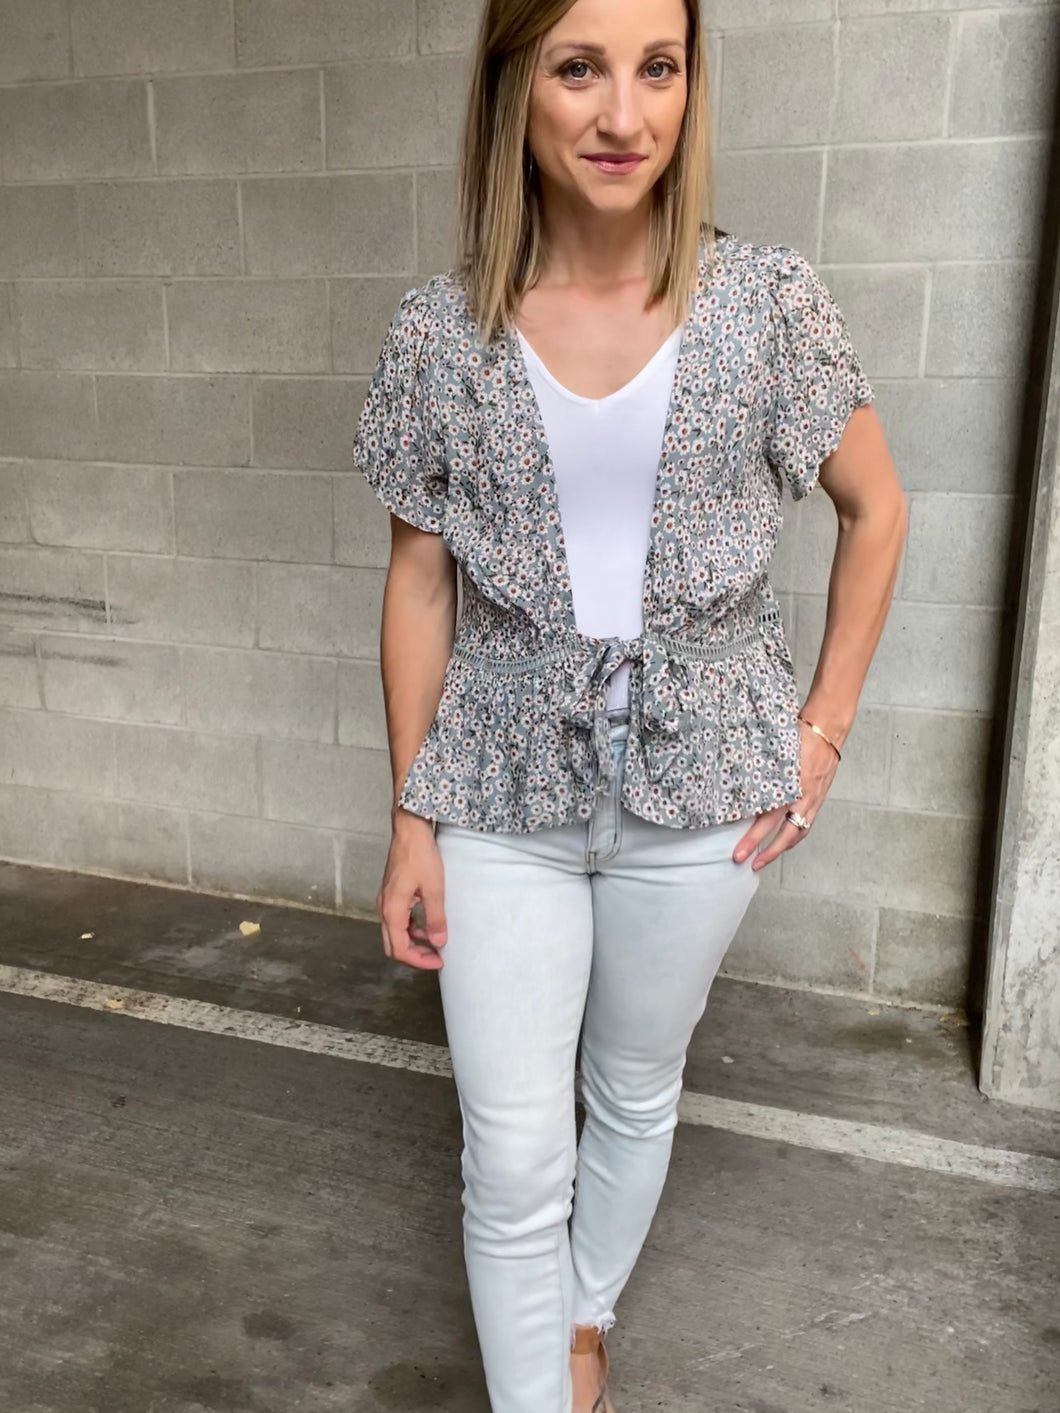 Floral Layering Top- SAMPLE - Smith & Vena Online Boutique